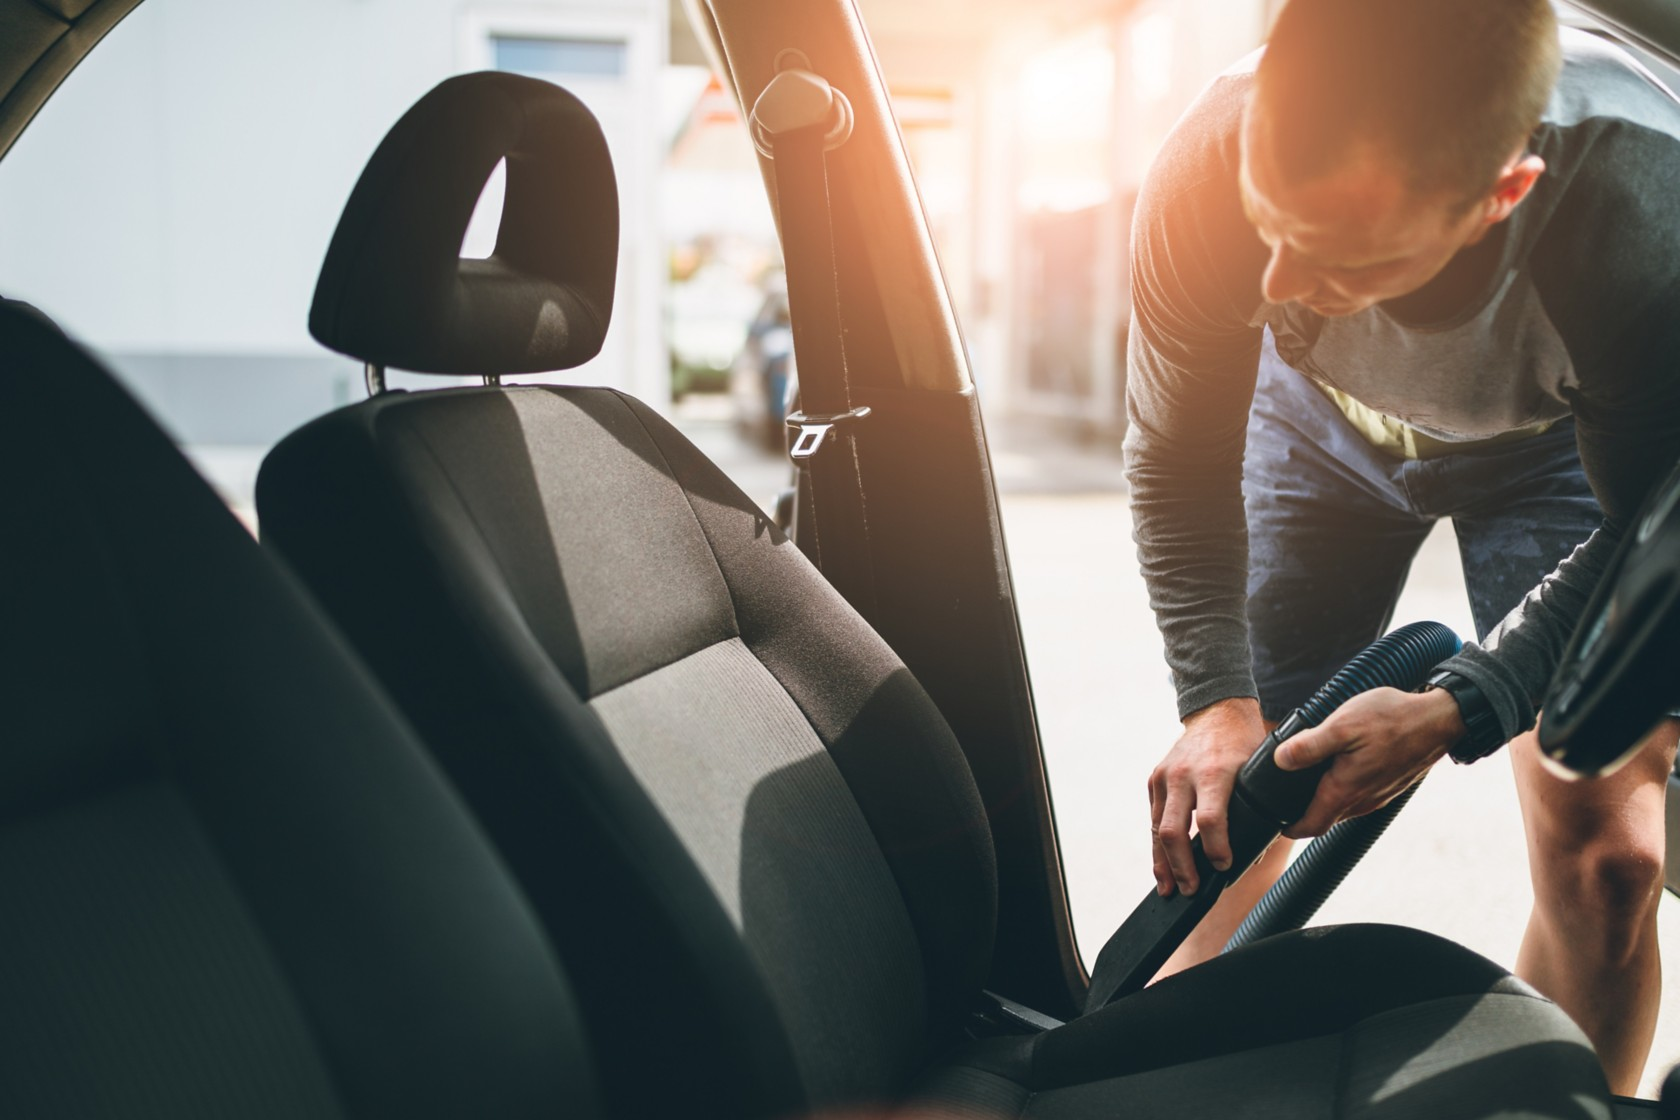 Car seat cleaning, man vacuums crumbs from black car seat